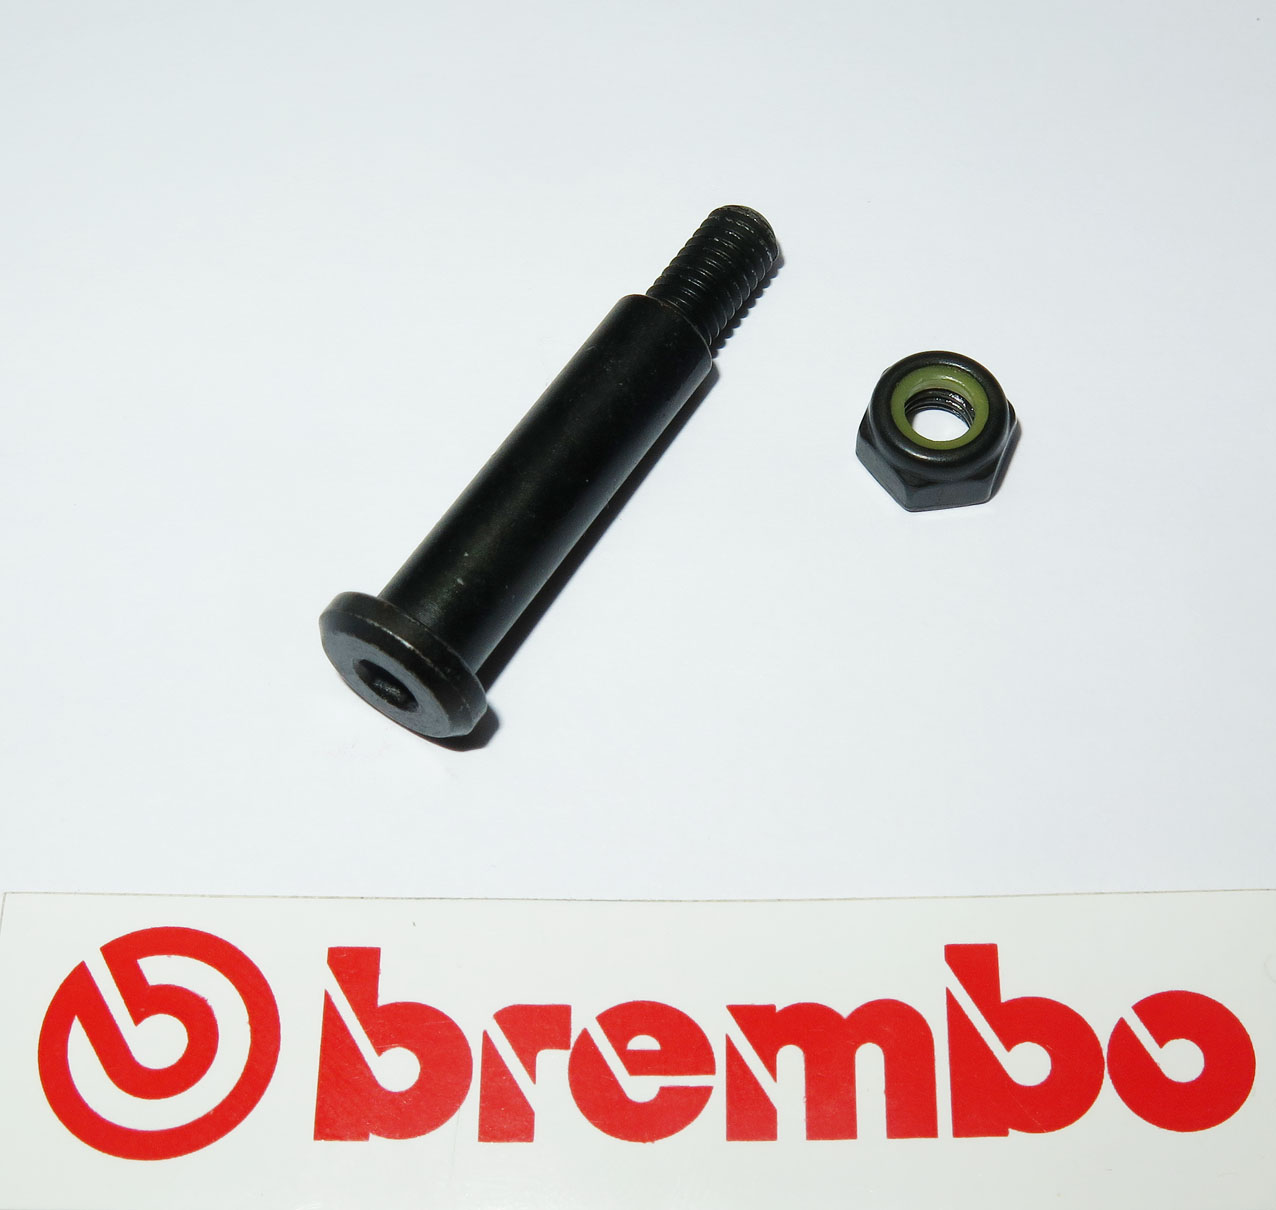 Brembo lever pin for Brembo Master Cylinder 19/17 RCS Corsa Corta